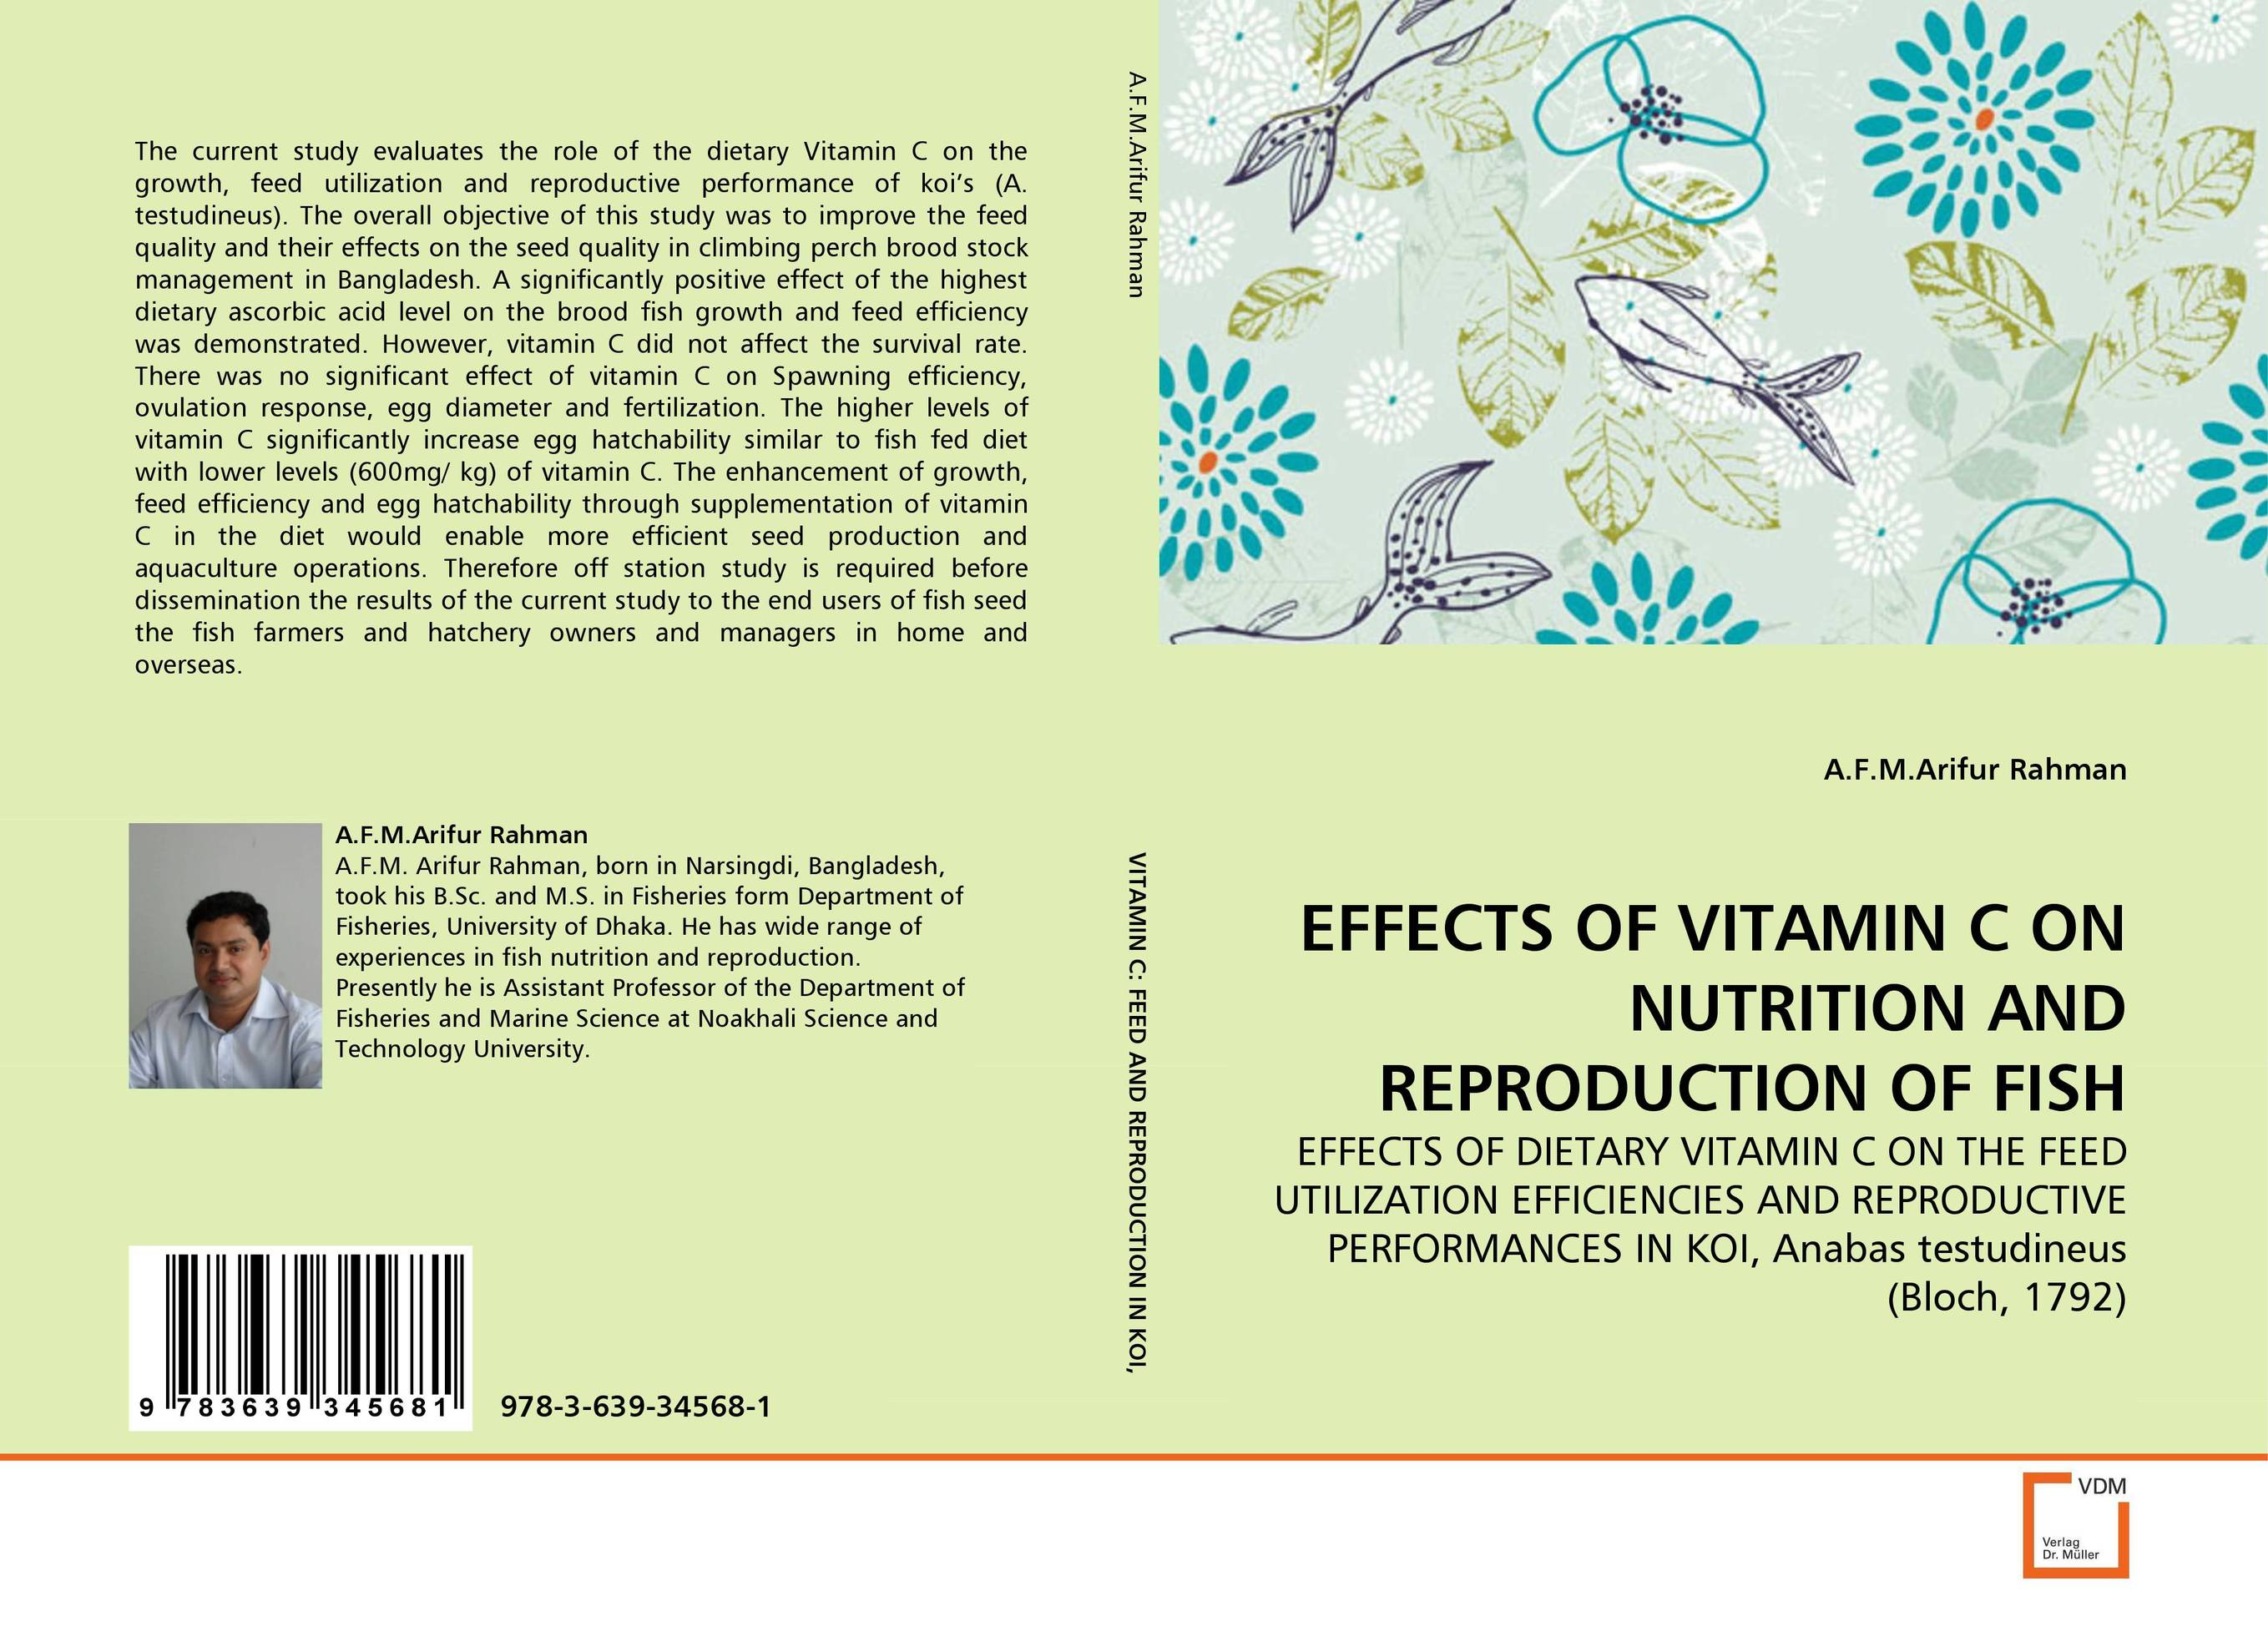 EFFECTS OF VITAMIN C ON NUTRITION AND REPRODUCTION OF FISH saeid navid effect of papaya leaf meal and vitamin d3 on meat quality